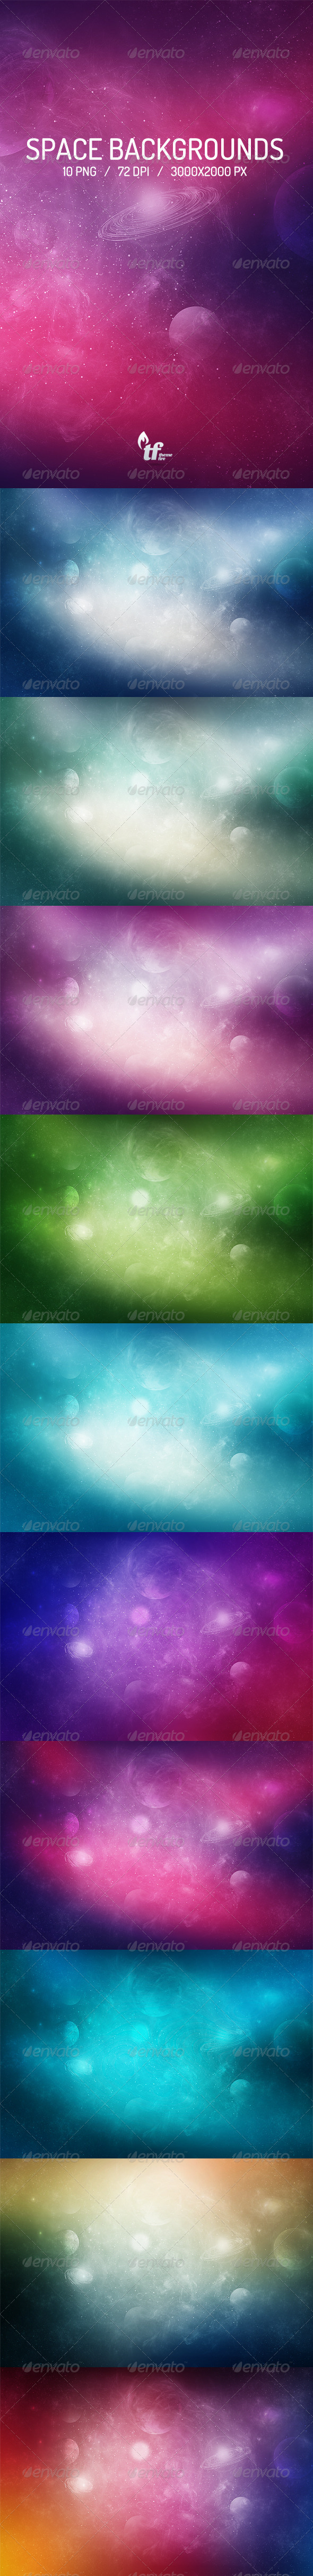 GraphicRiver Space Backgrounds 7009242